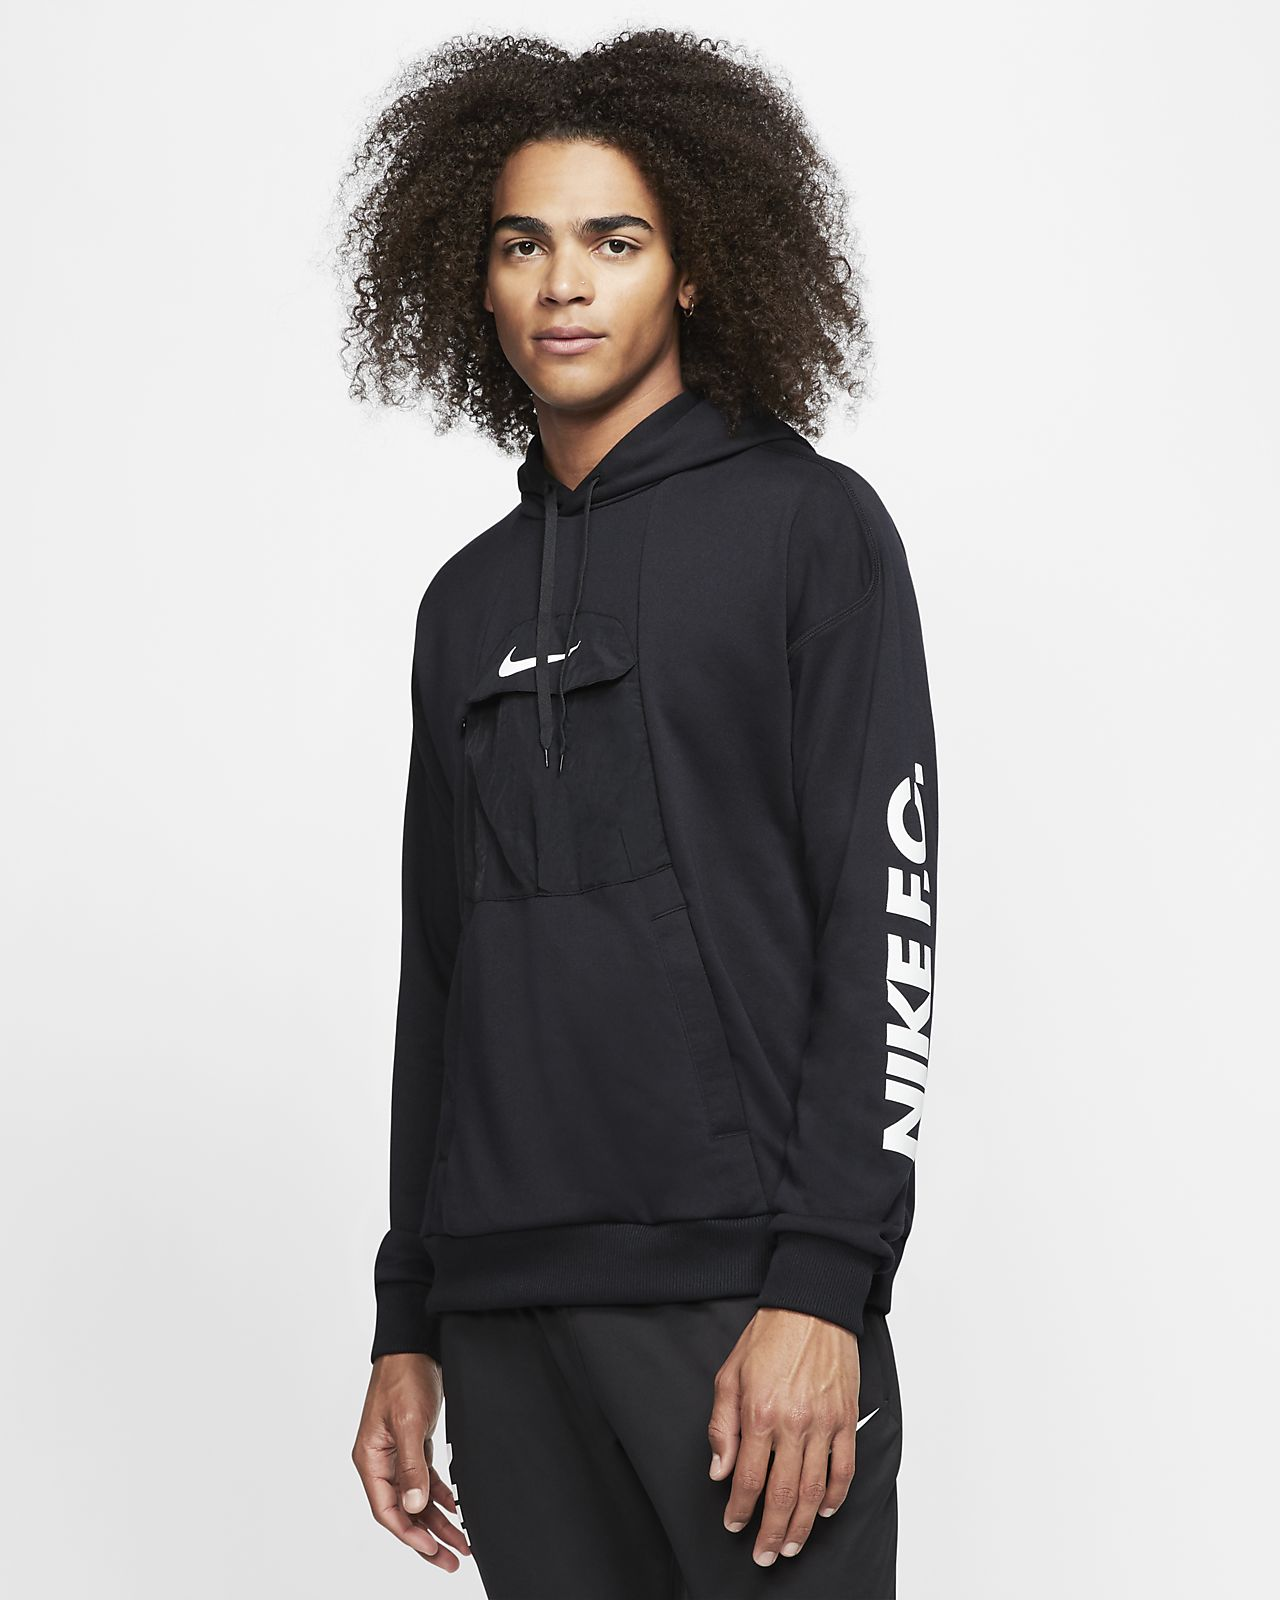 Nike F.C. Men's Pullover Football Hoodie